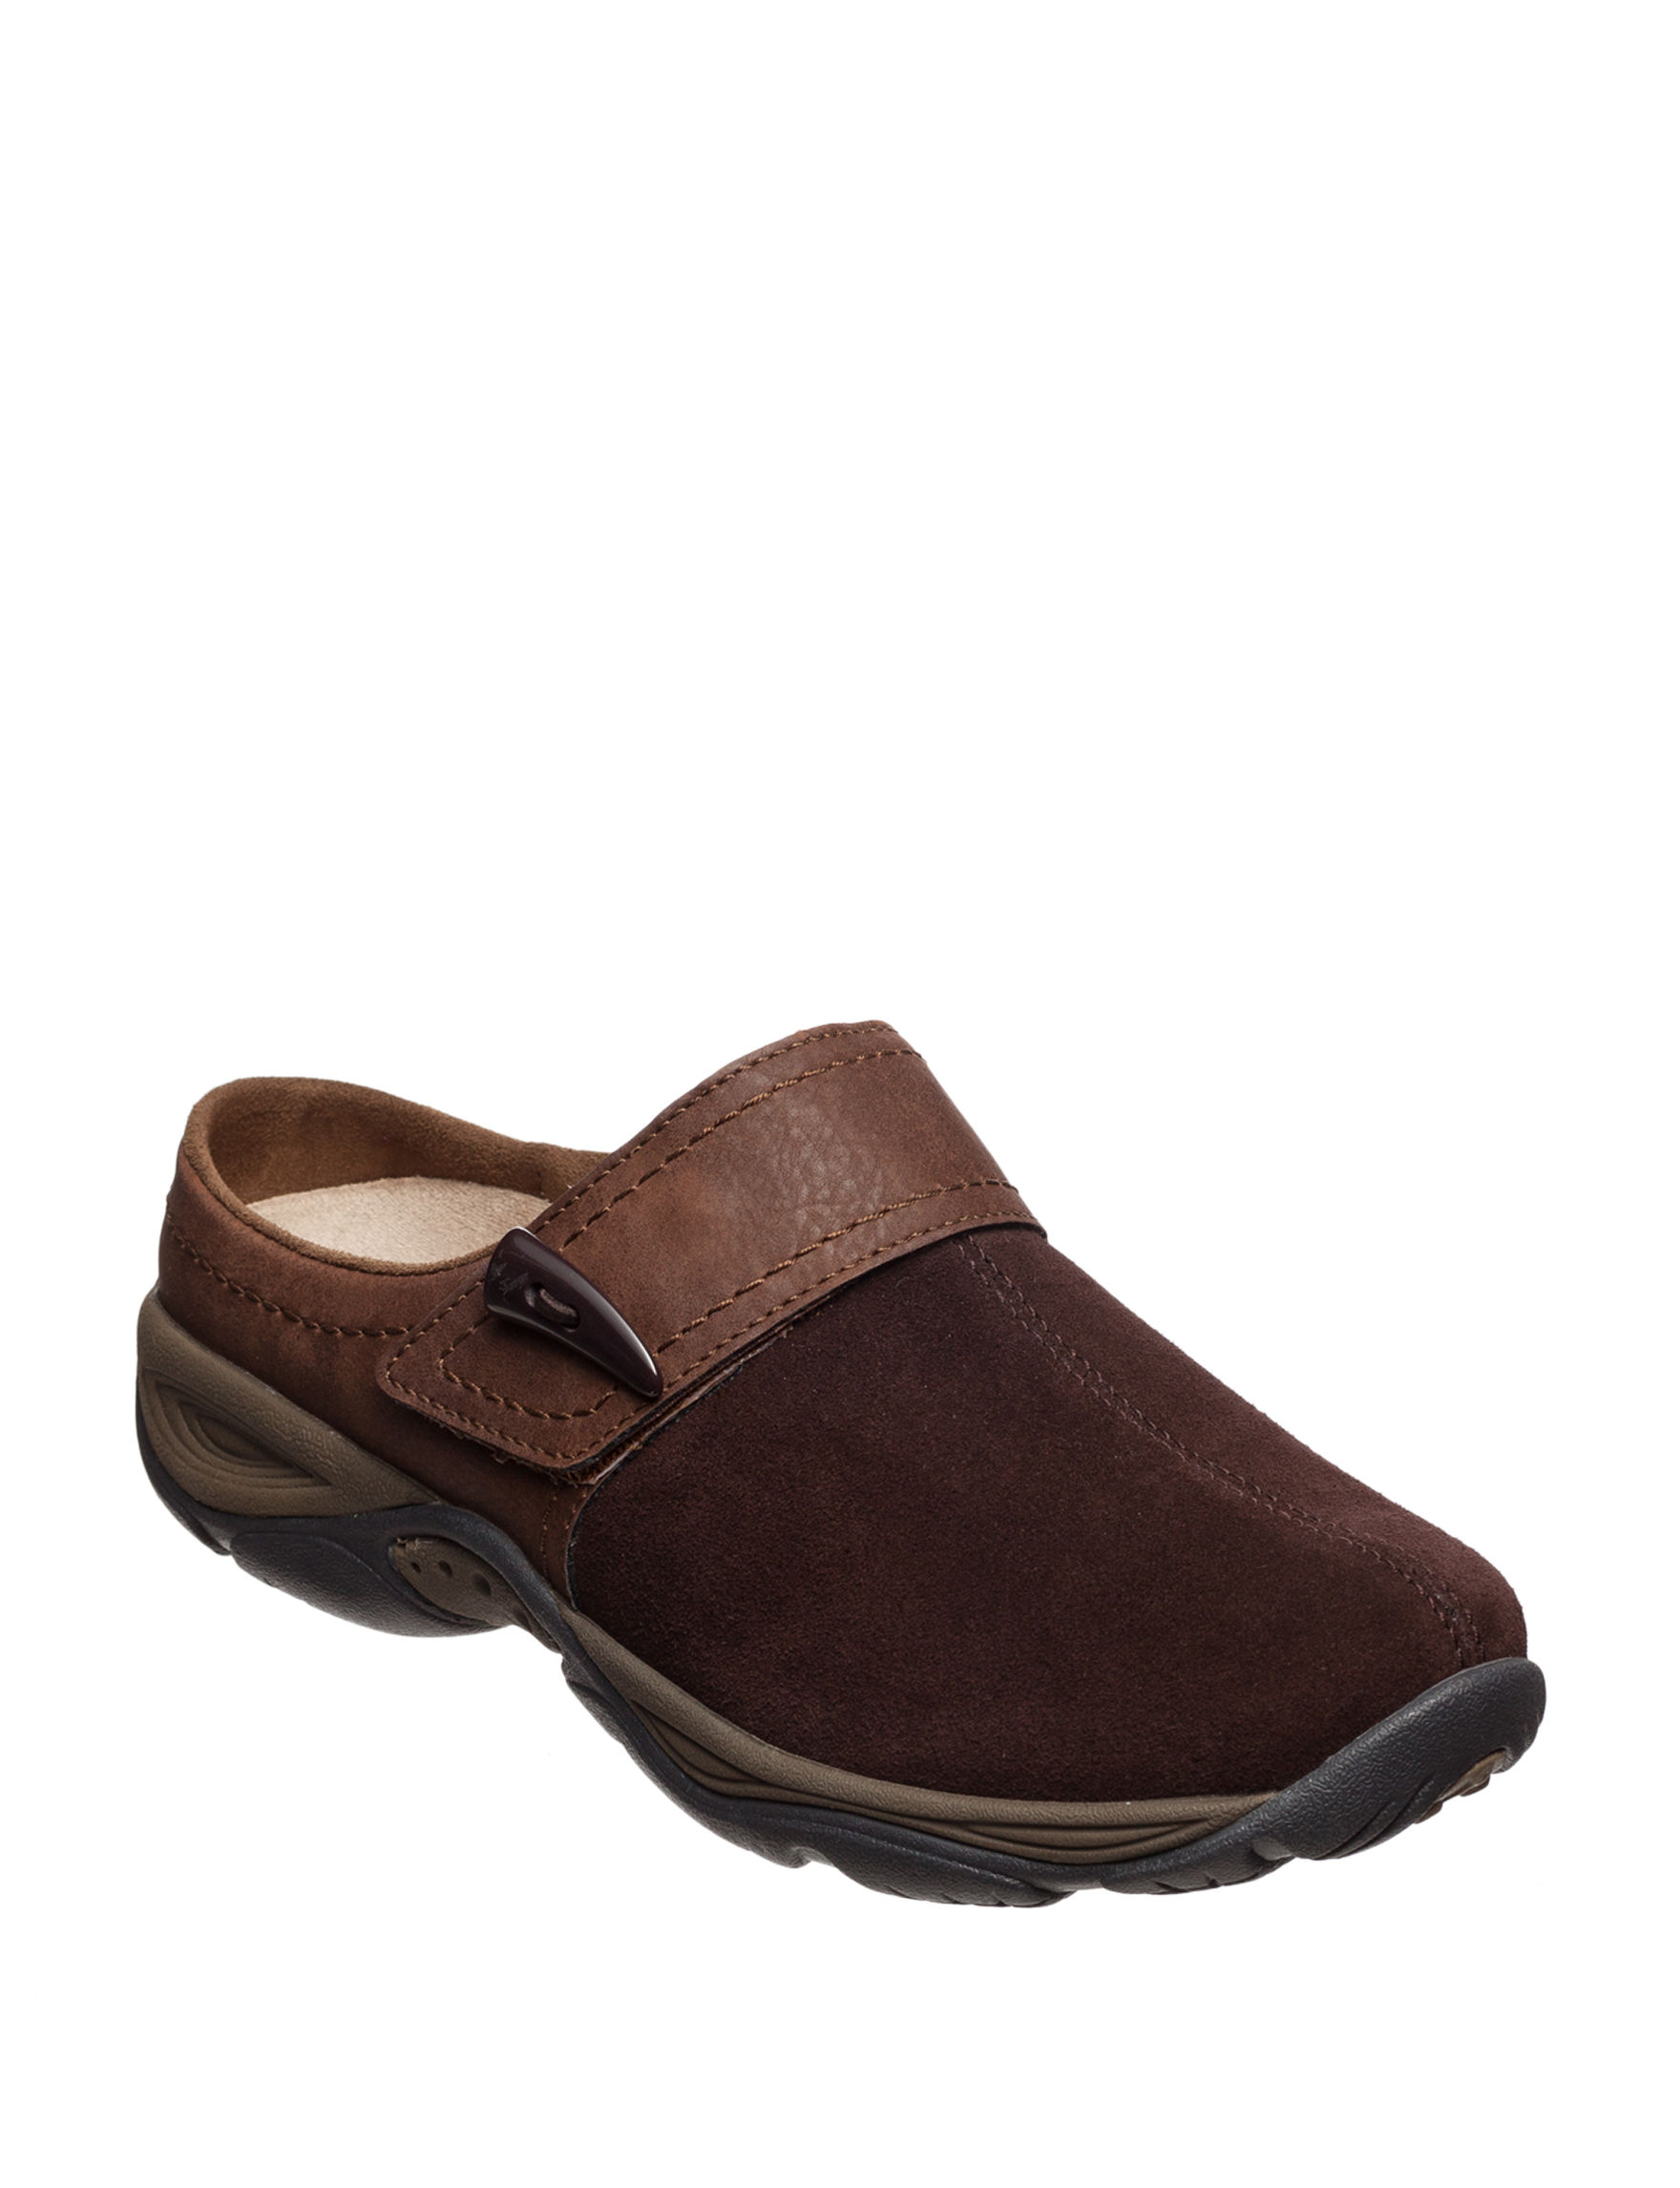 Easy Spirit Brown Comfort